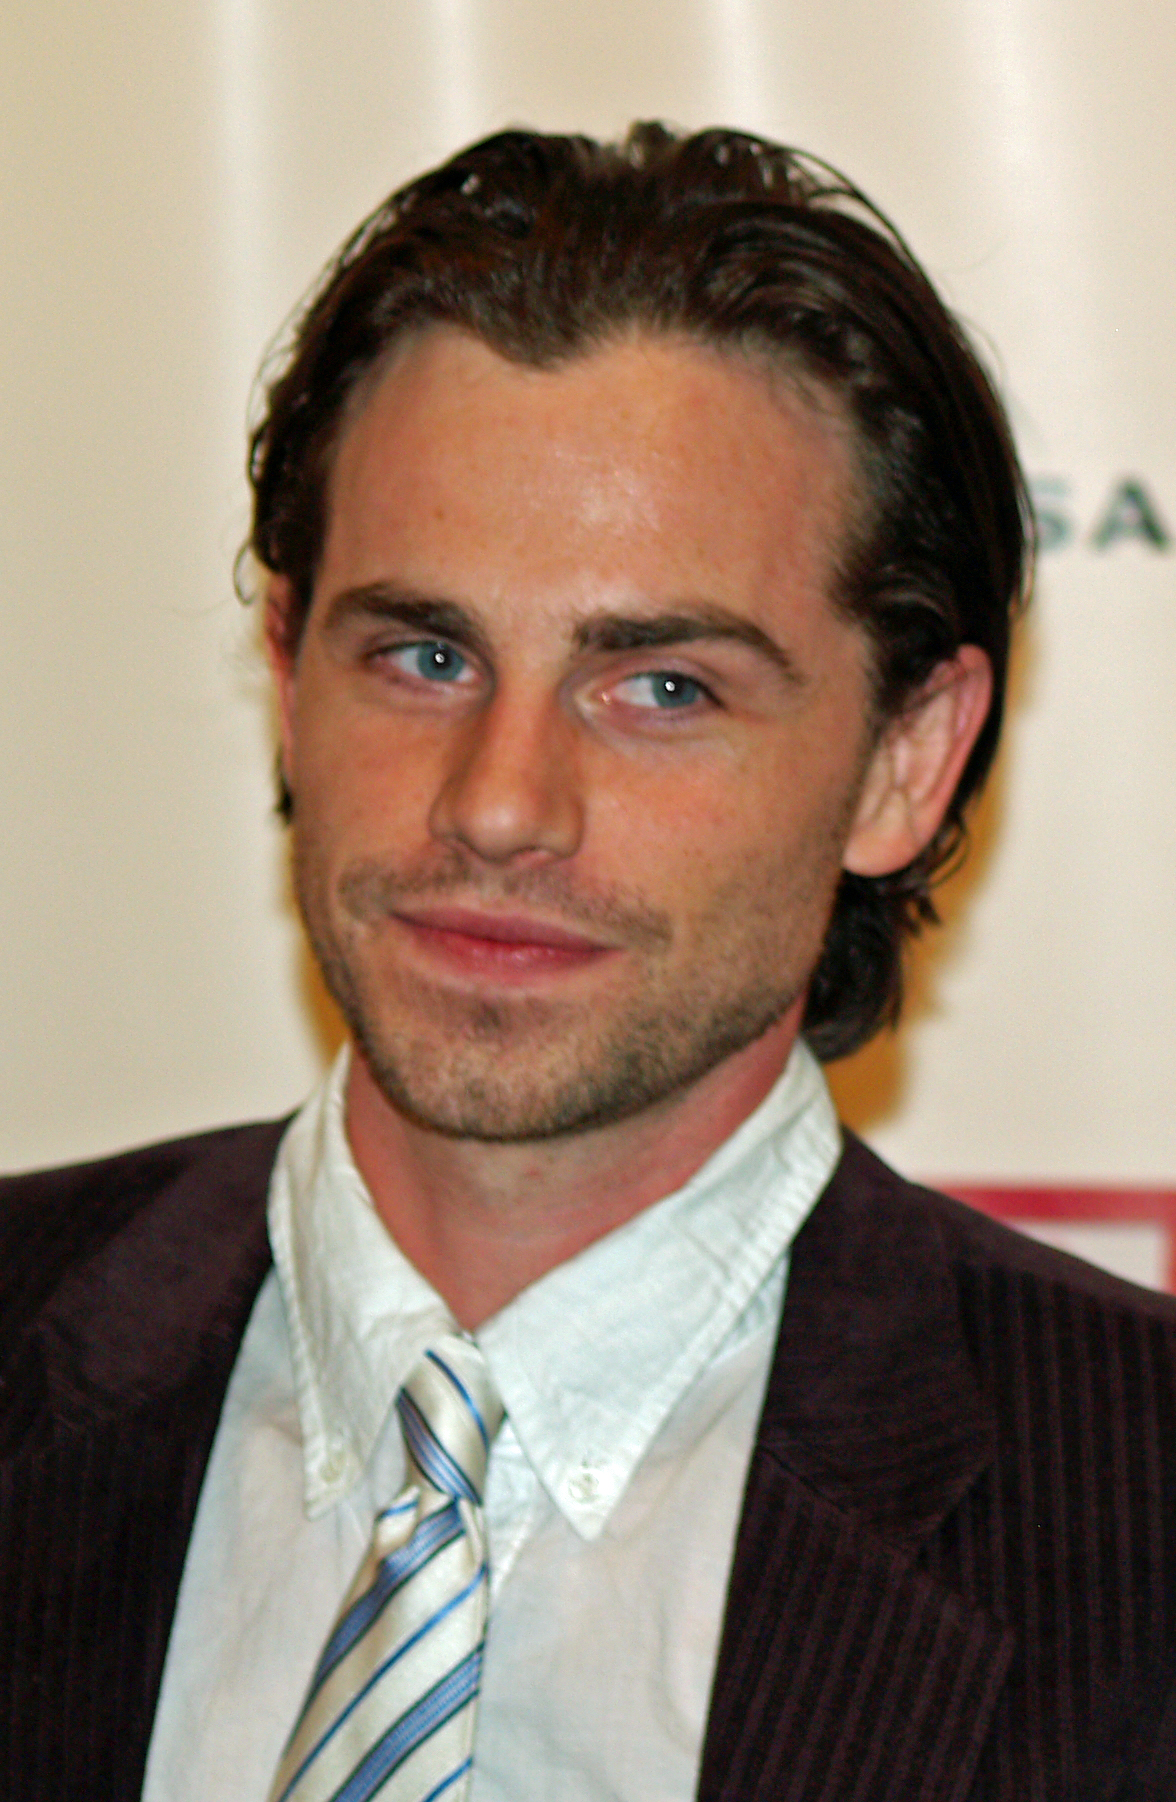 File Rider Strong By David Shankbone Jpg Wikimedia Commons